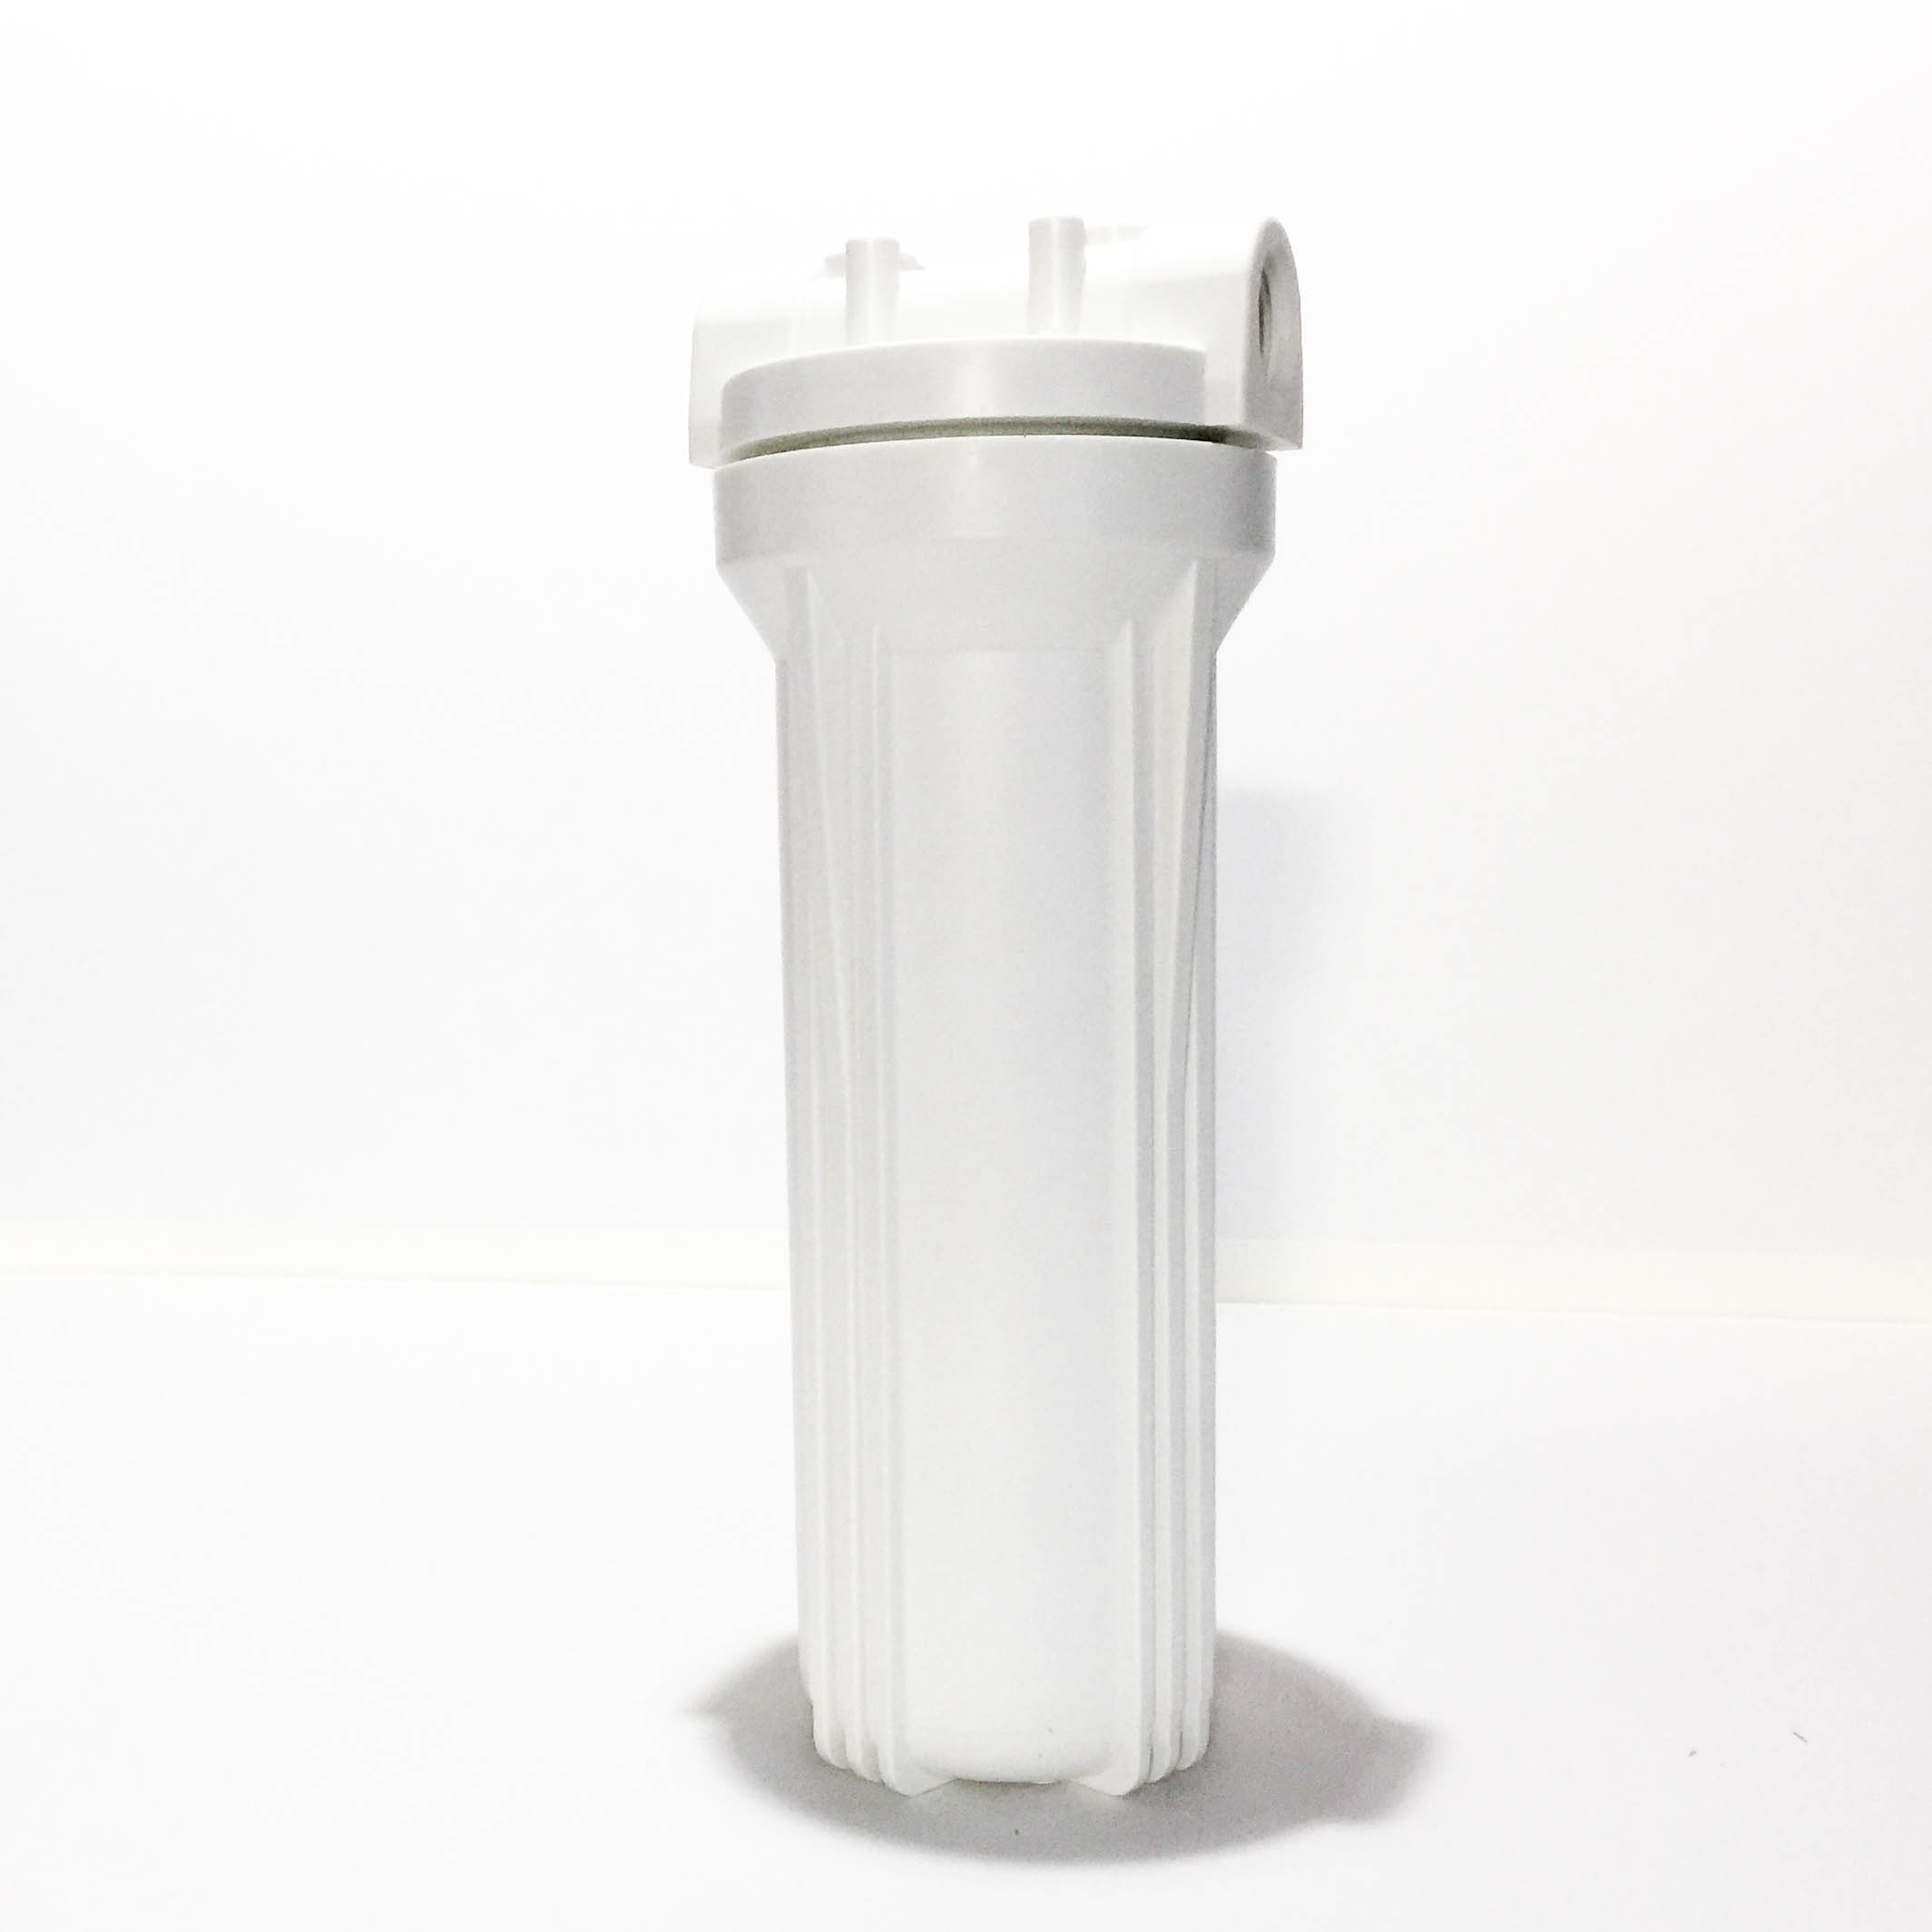 Single 1 2 Quot White Canister With Wrench No Fittings Rv